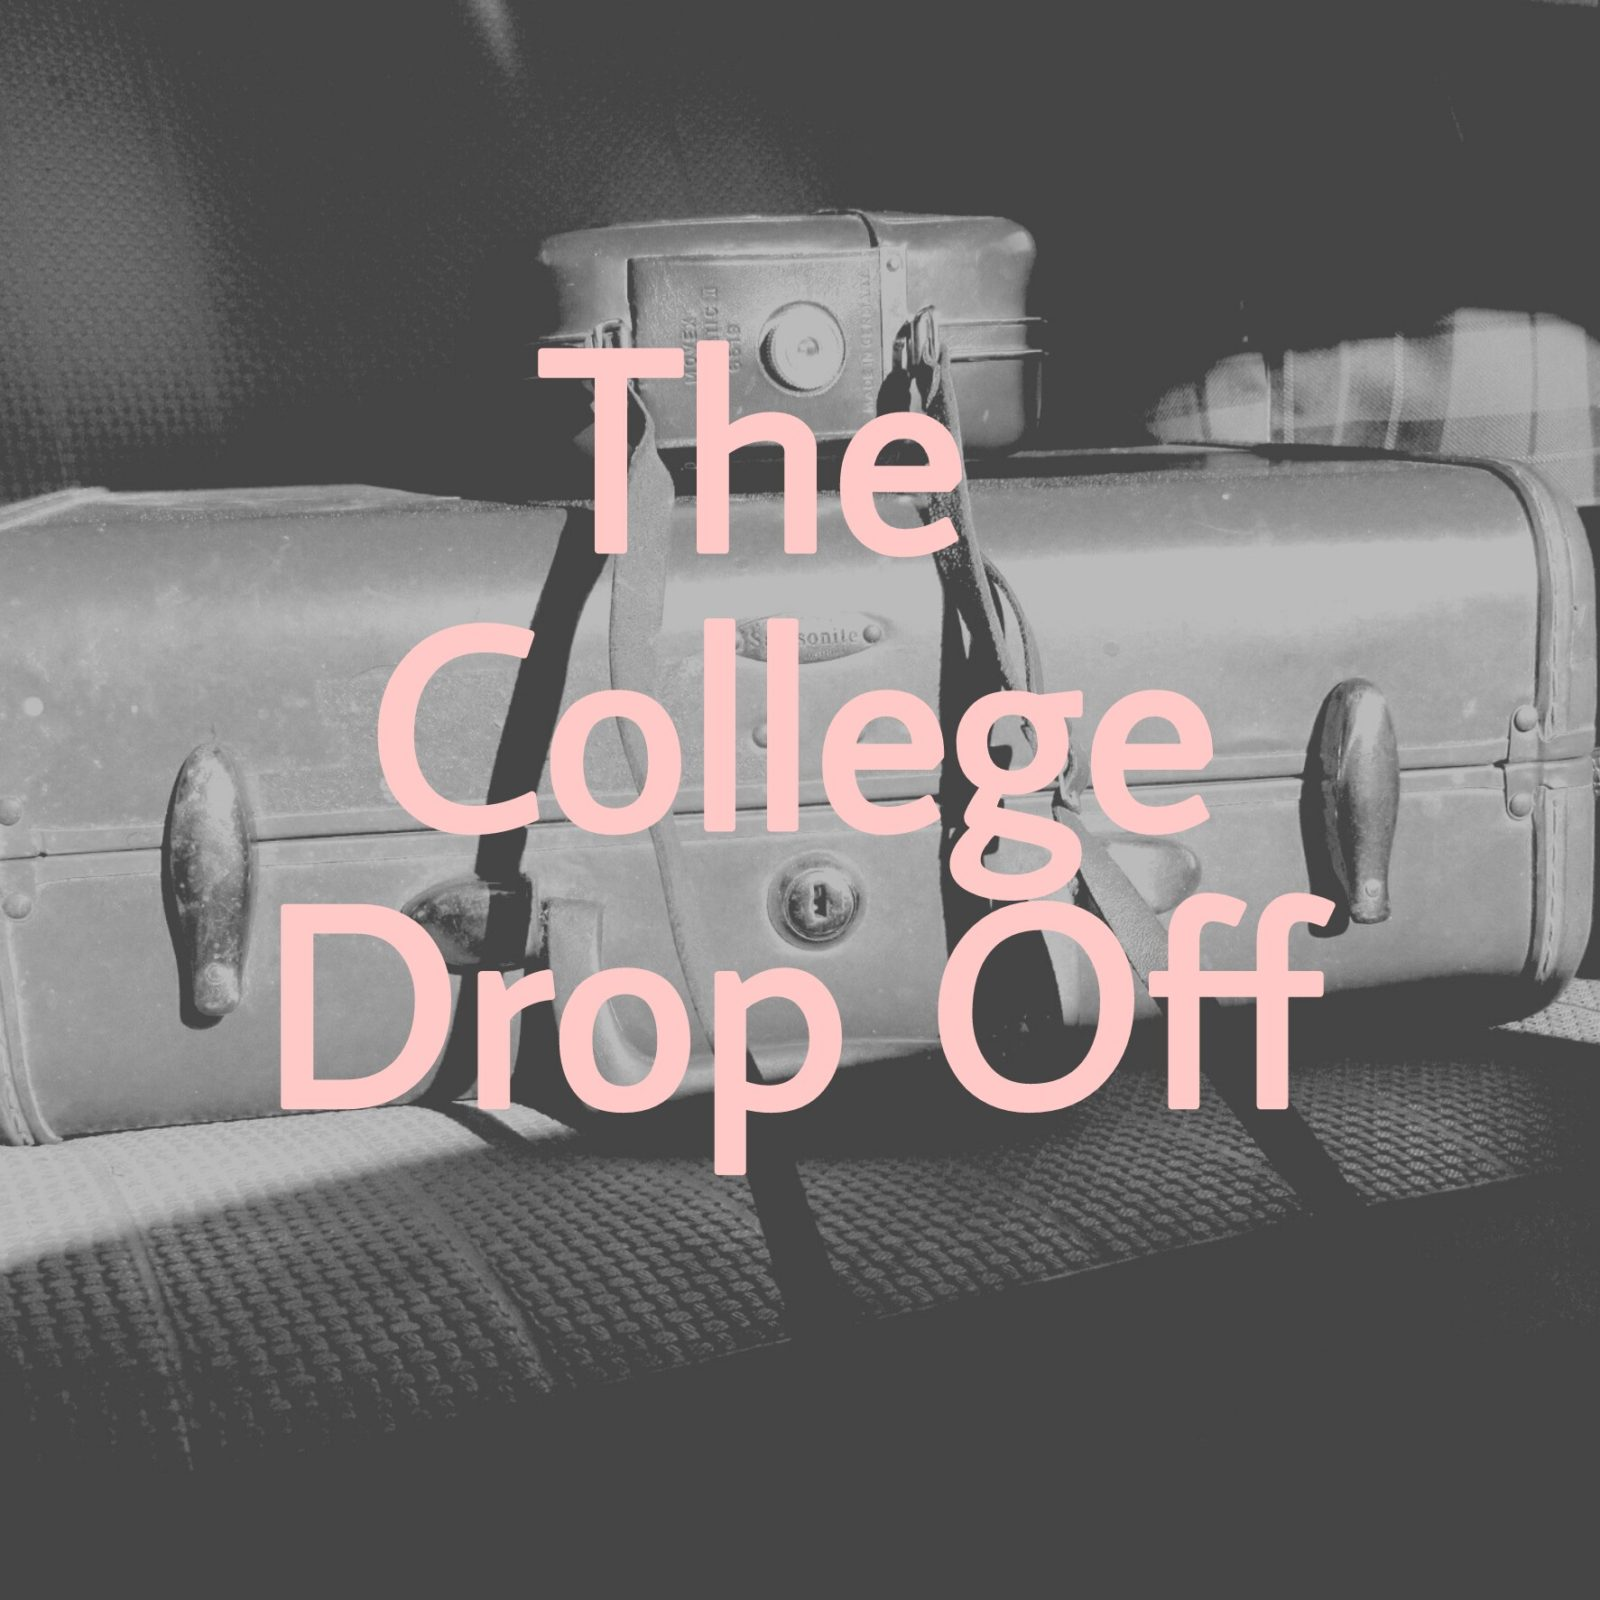 The College Drop off